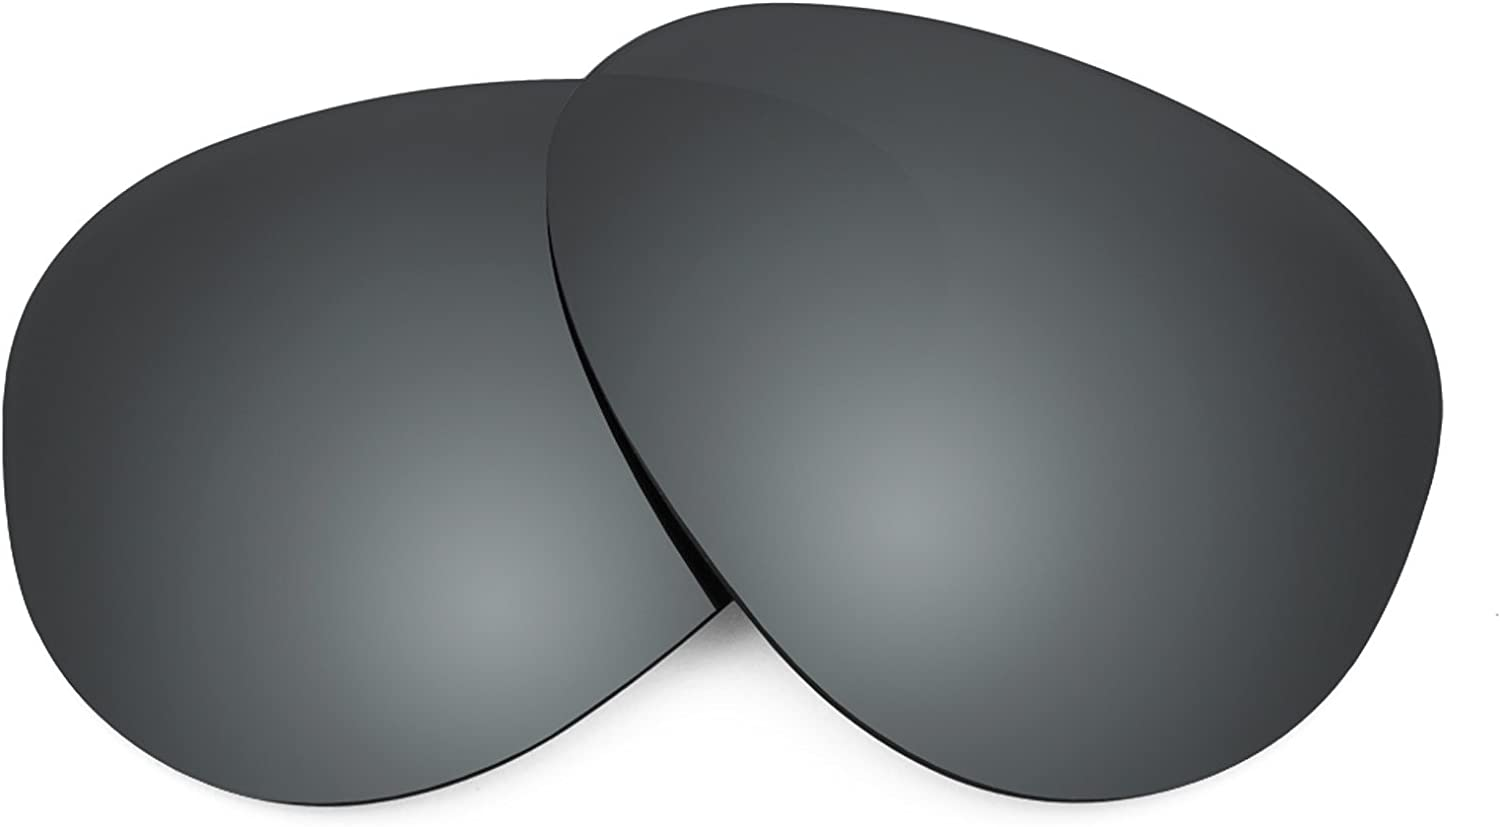 Revant Lentes de Repuesto Ray-Ban Aviator RB3025 55mm